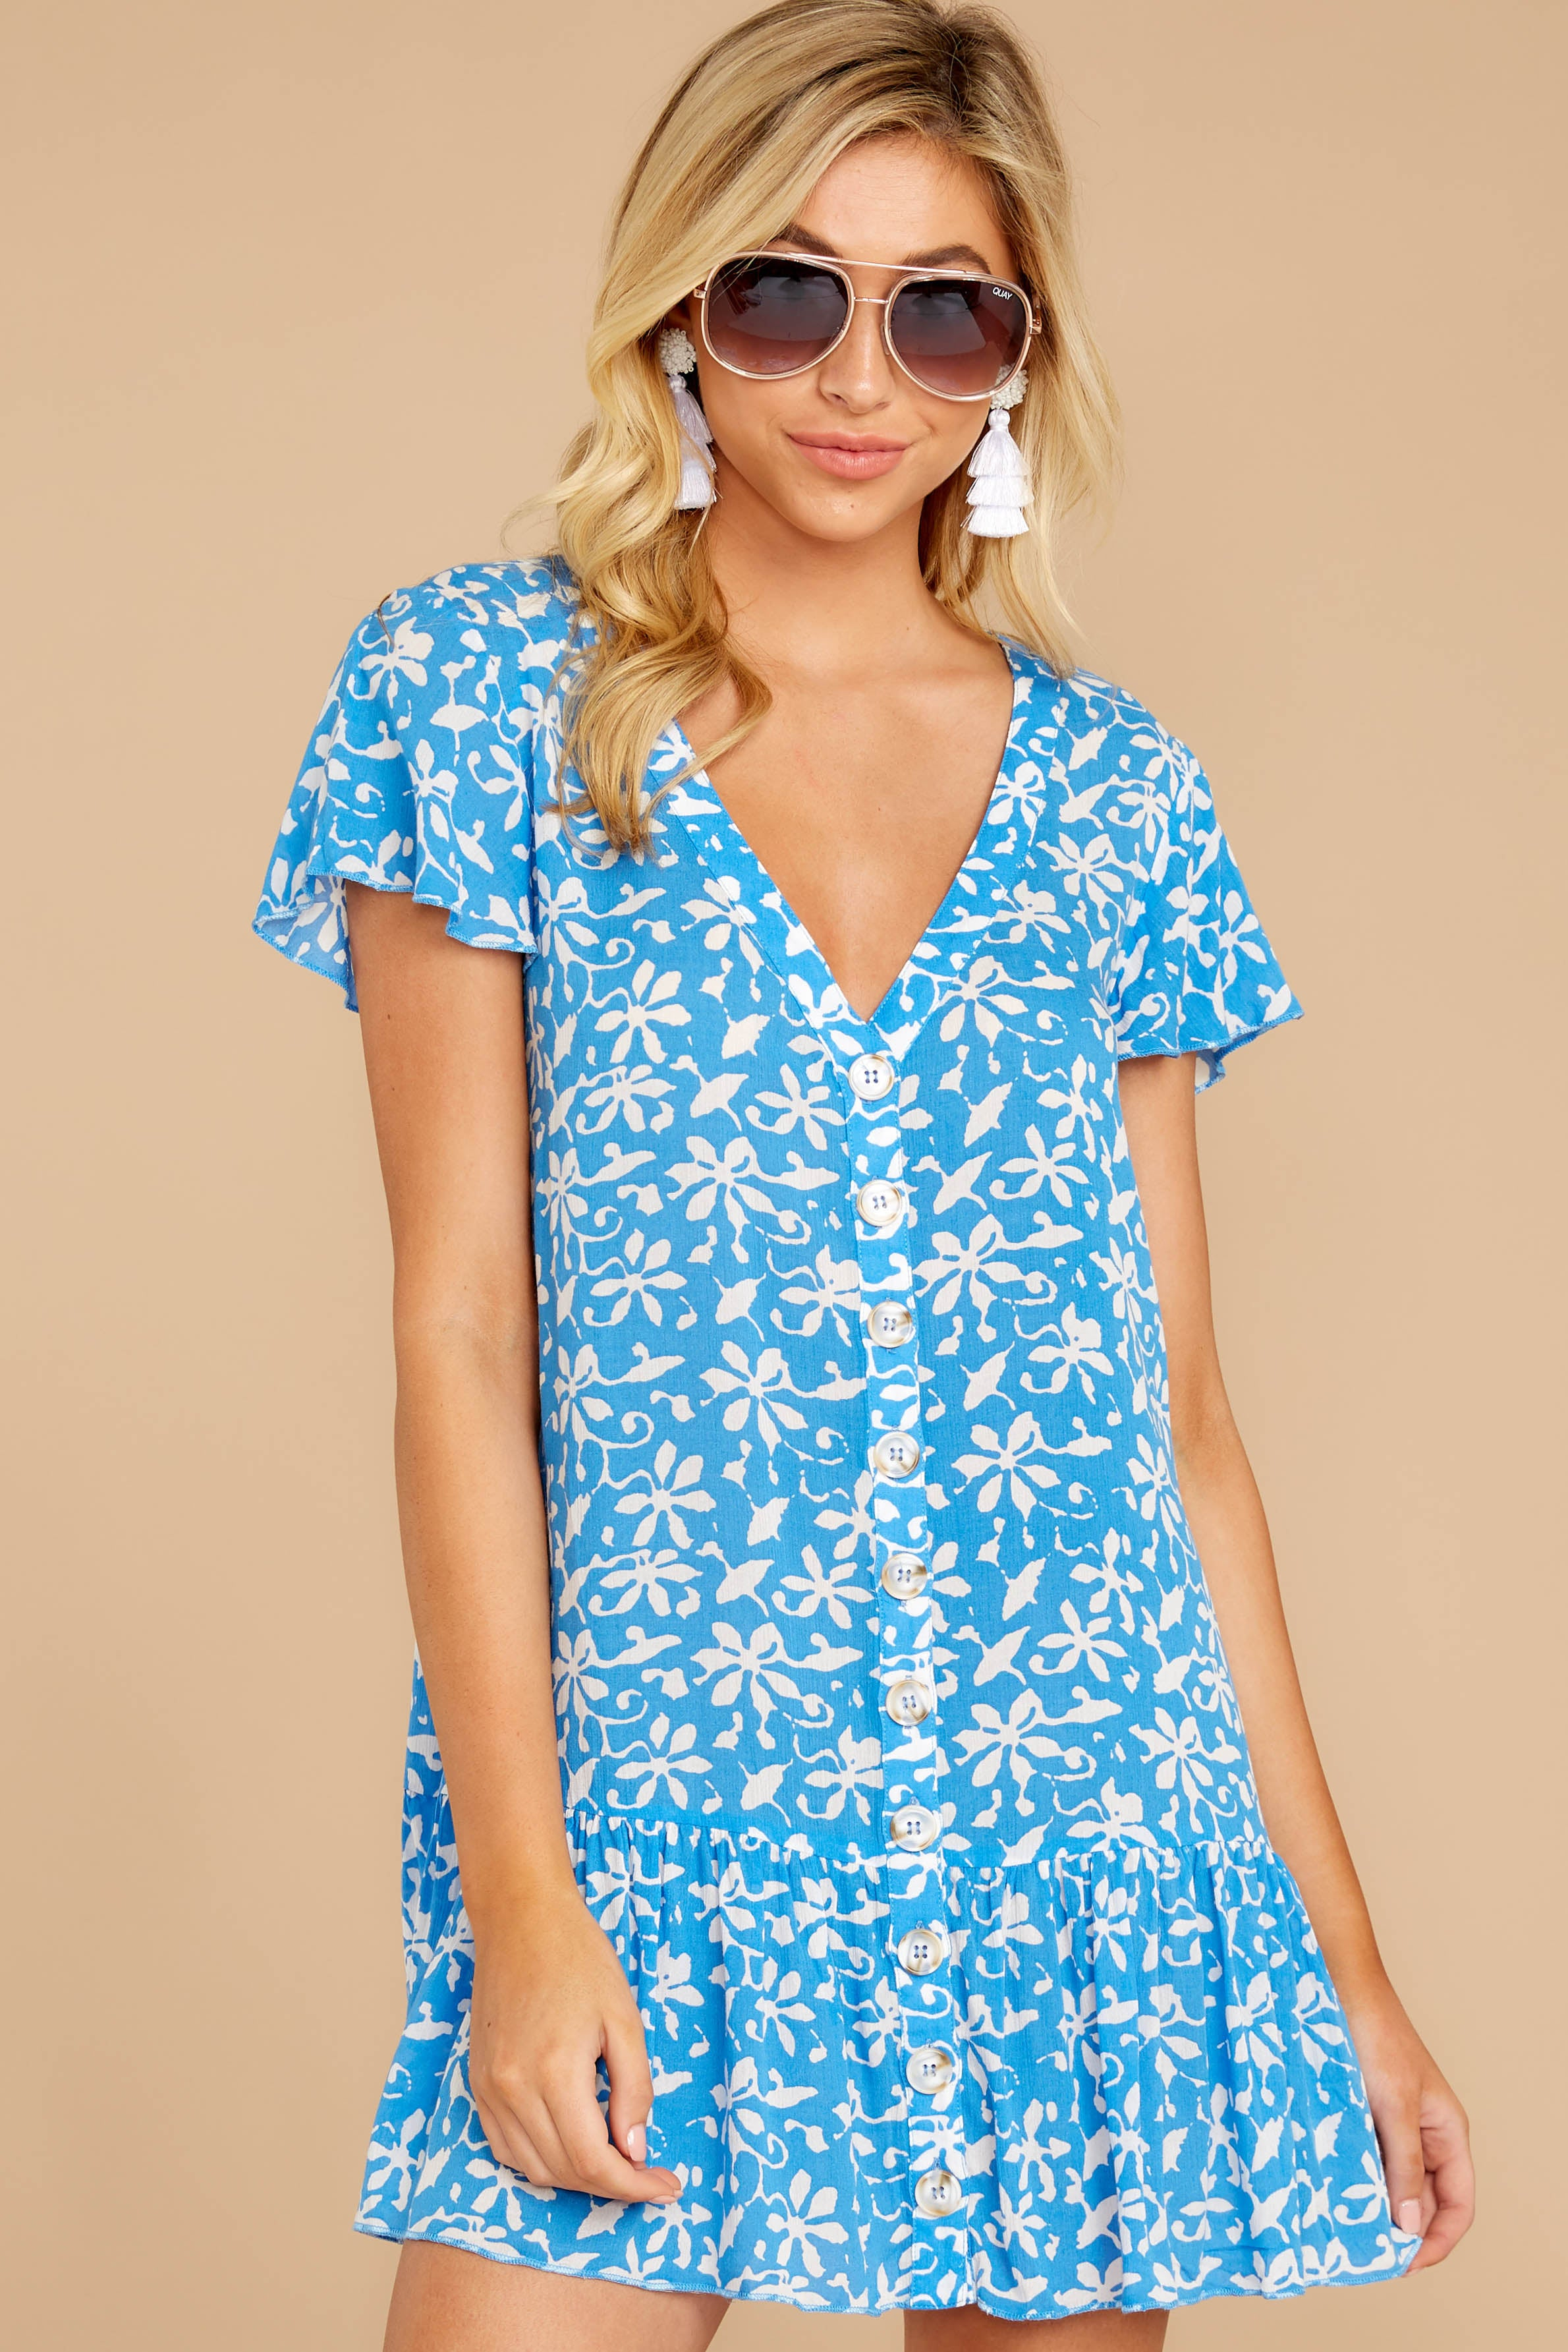 5 Sweeter By The Hour Bright Blue Print Dress at reddressboutique.com